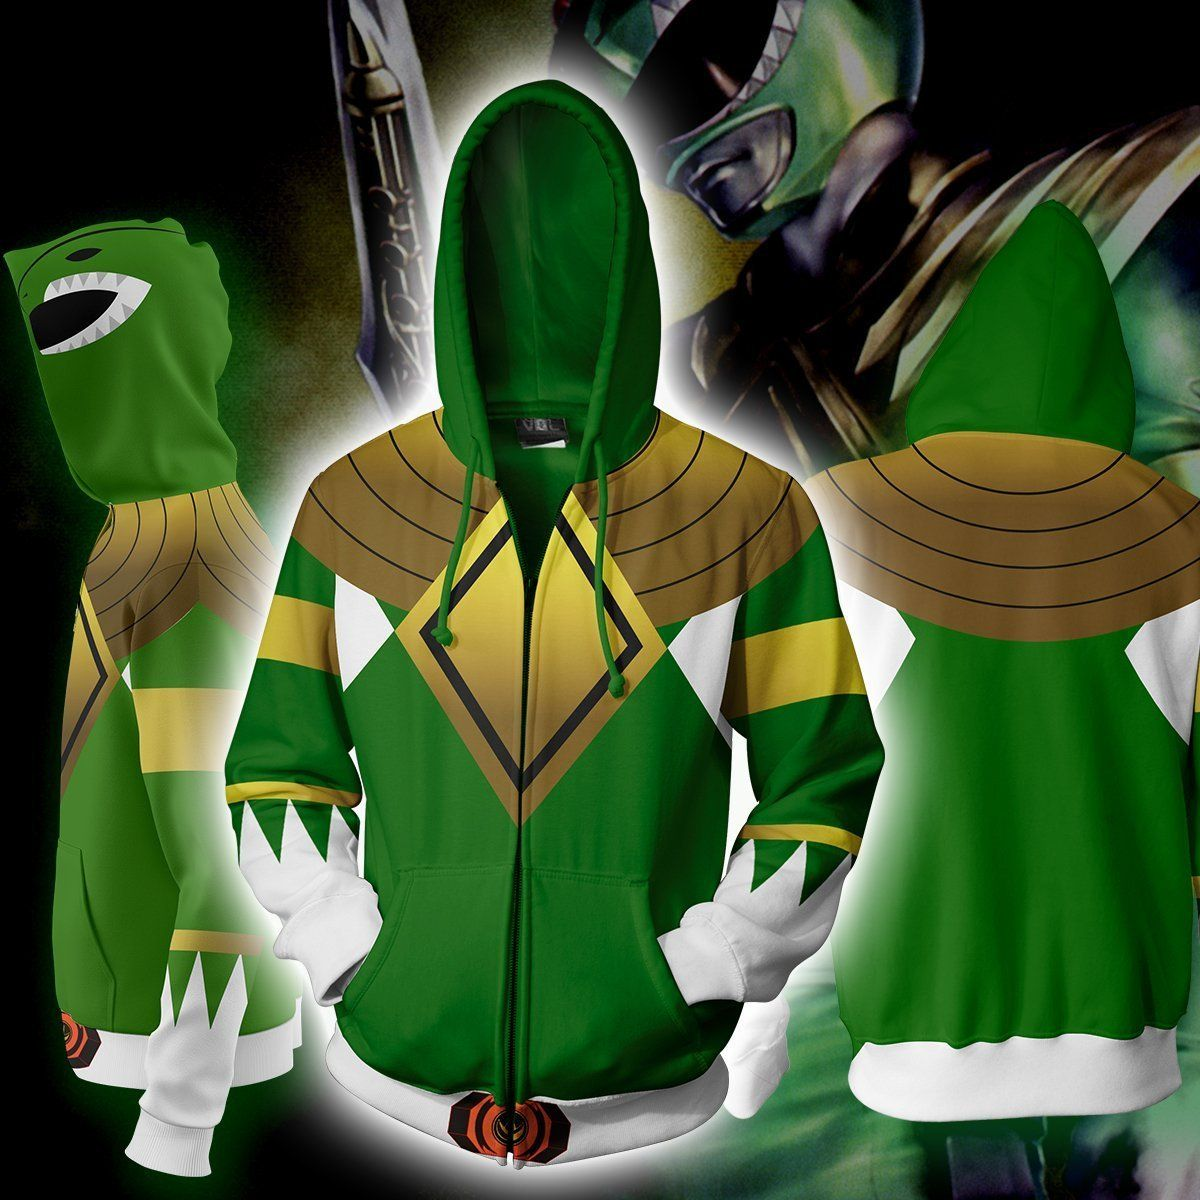 Power Rangers Hoodies - Power Rangers Green Cosplay Zip Up Hoodie